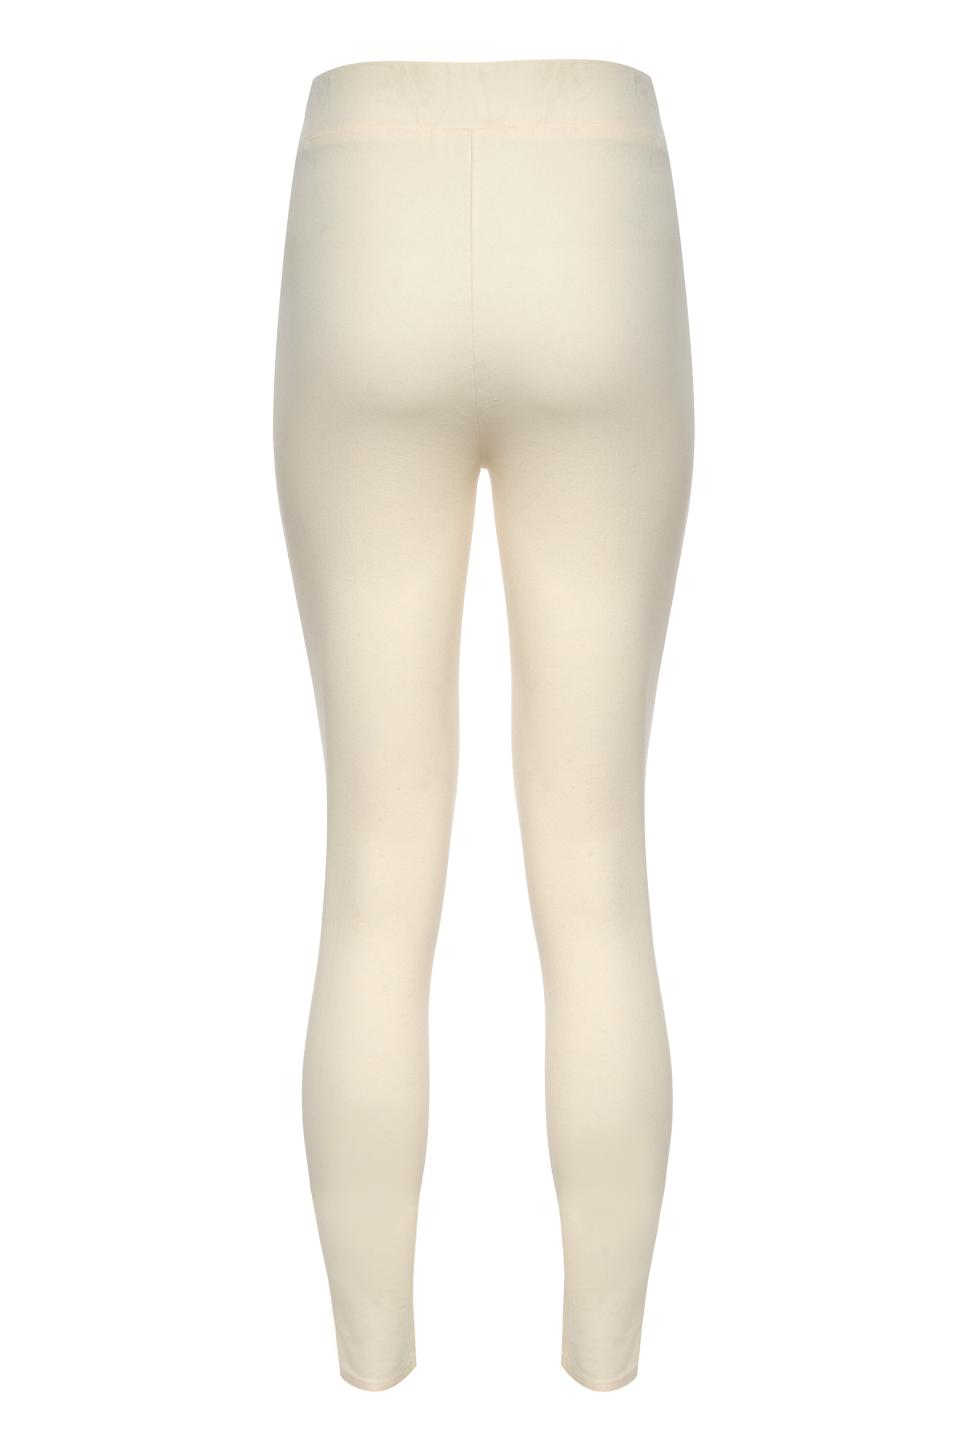 THE PIA PULL ON PANTS 5